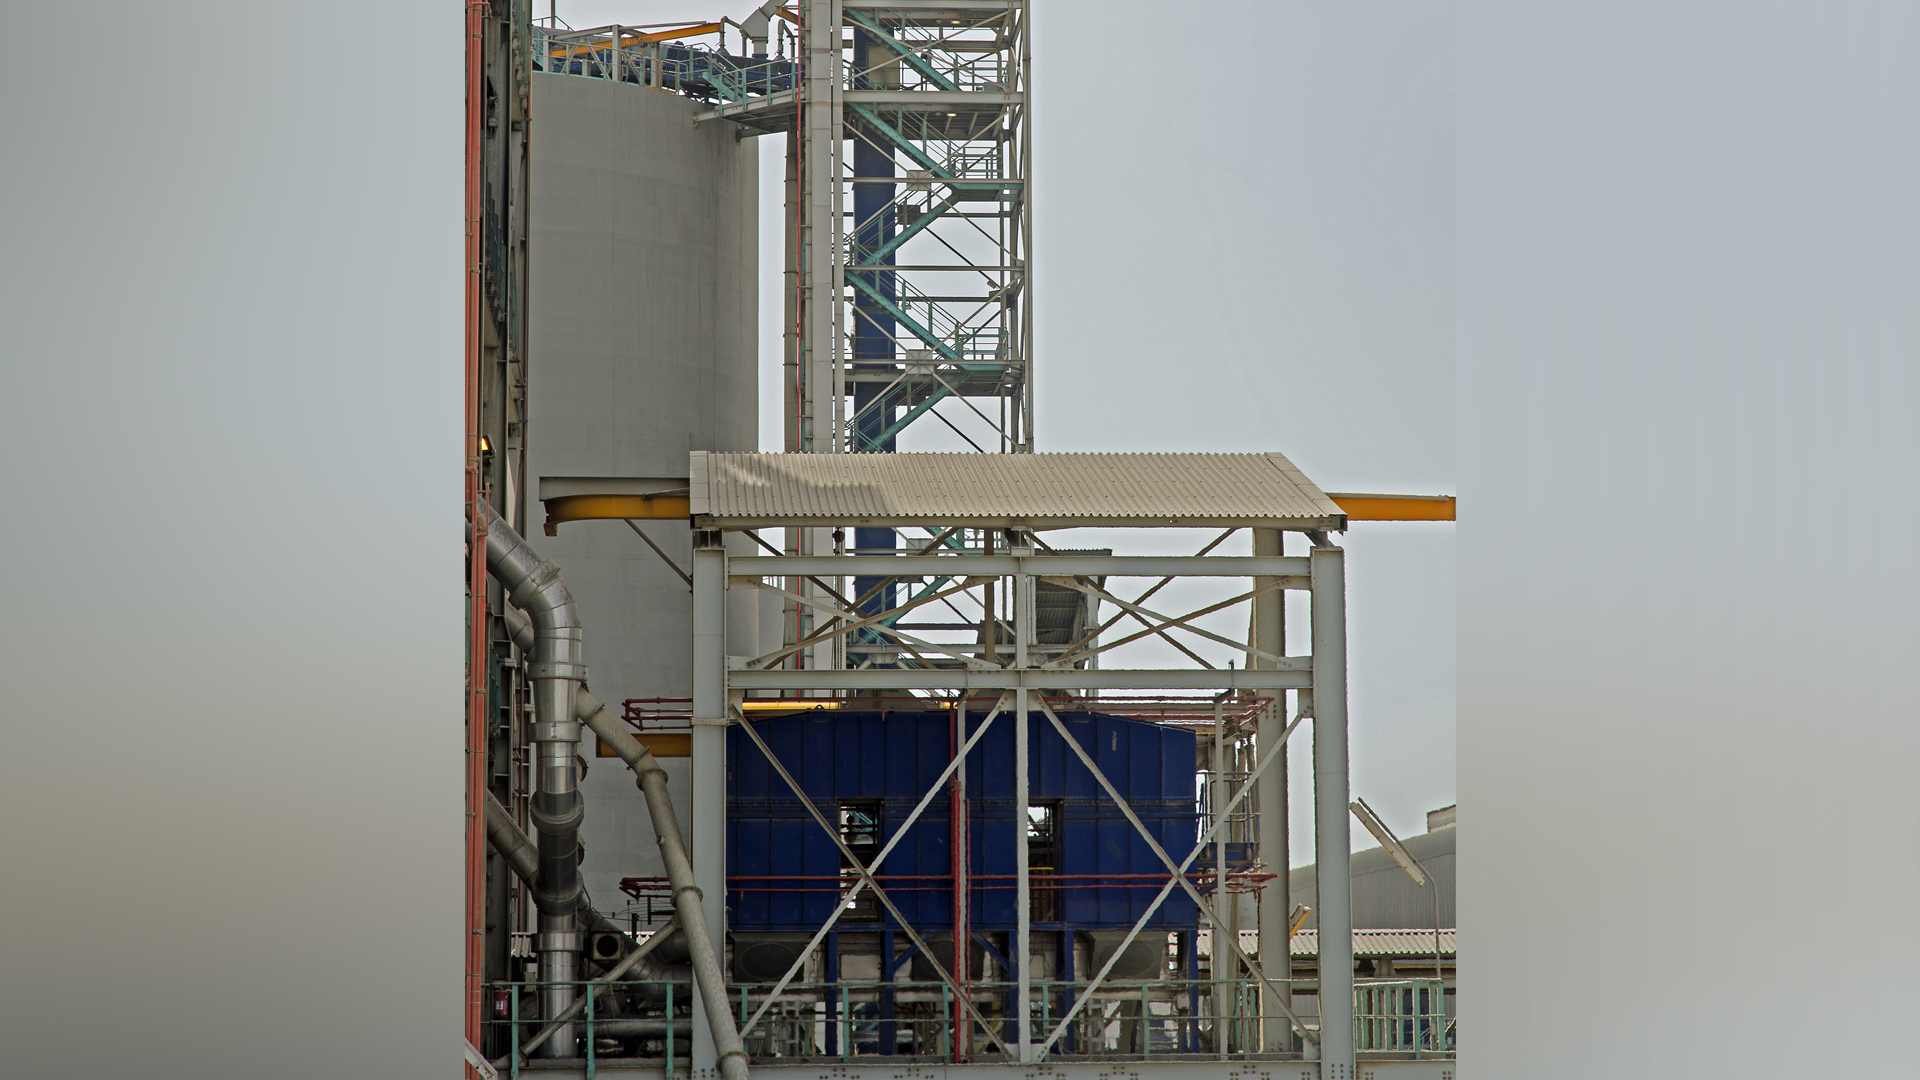 Oxidizers dry-scrubber Reactor-bag-filter baghouse fgd desulfurization NOx-control Chlorines Acid gas heavy-metals particulates-removal emission Waste-to-energy Lime-Injection-reagent oxid-FIVES